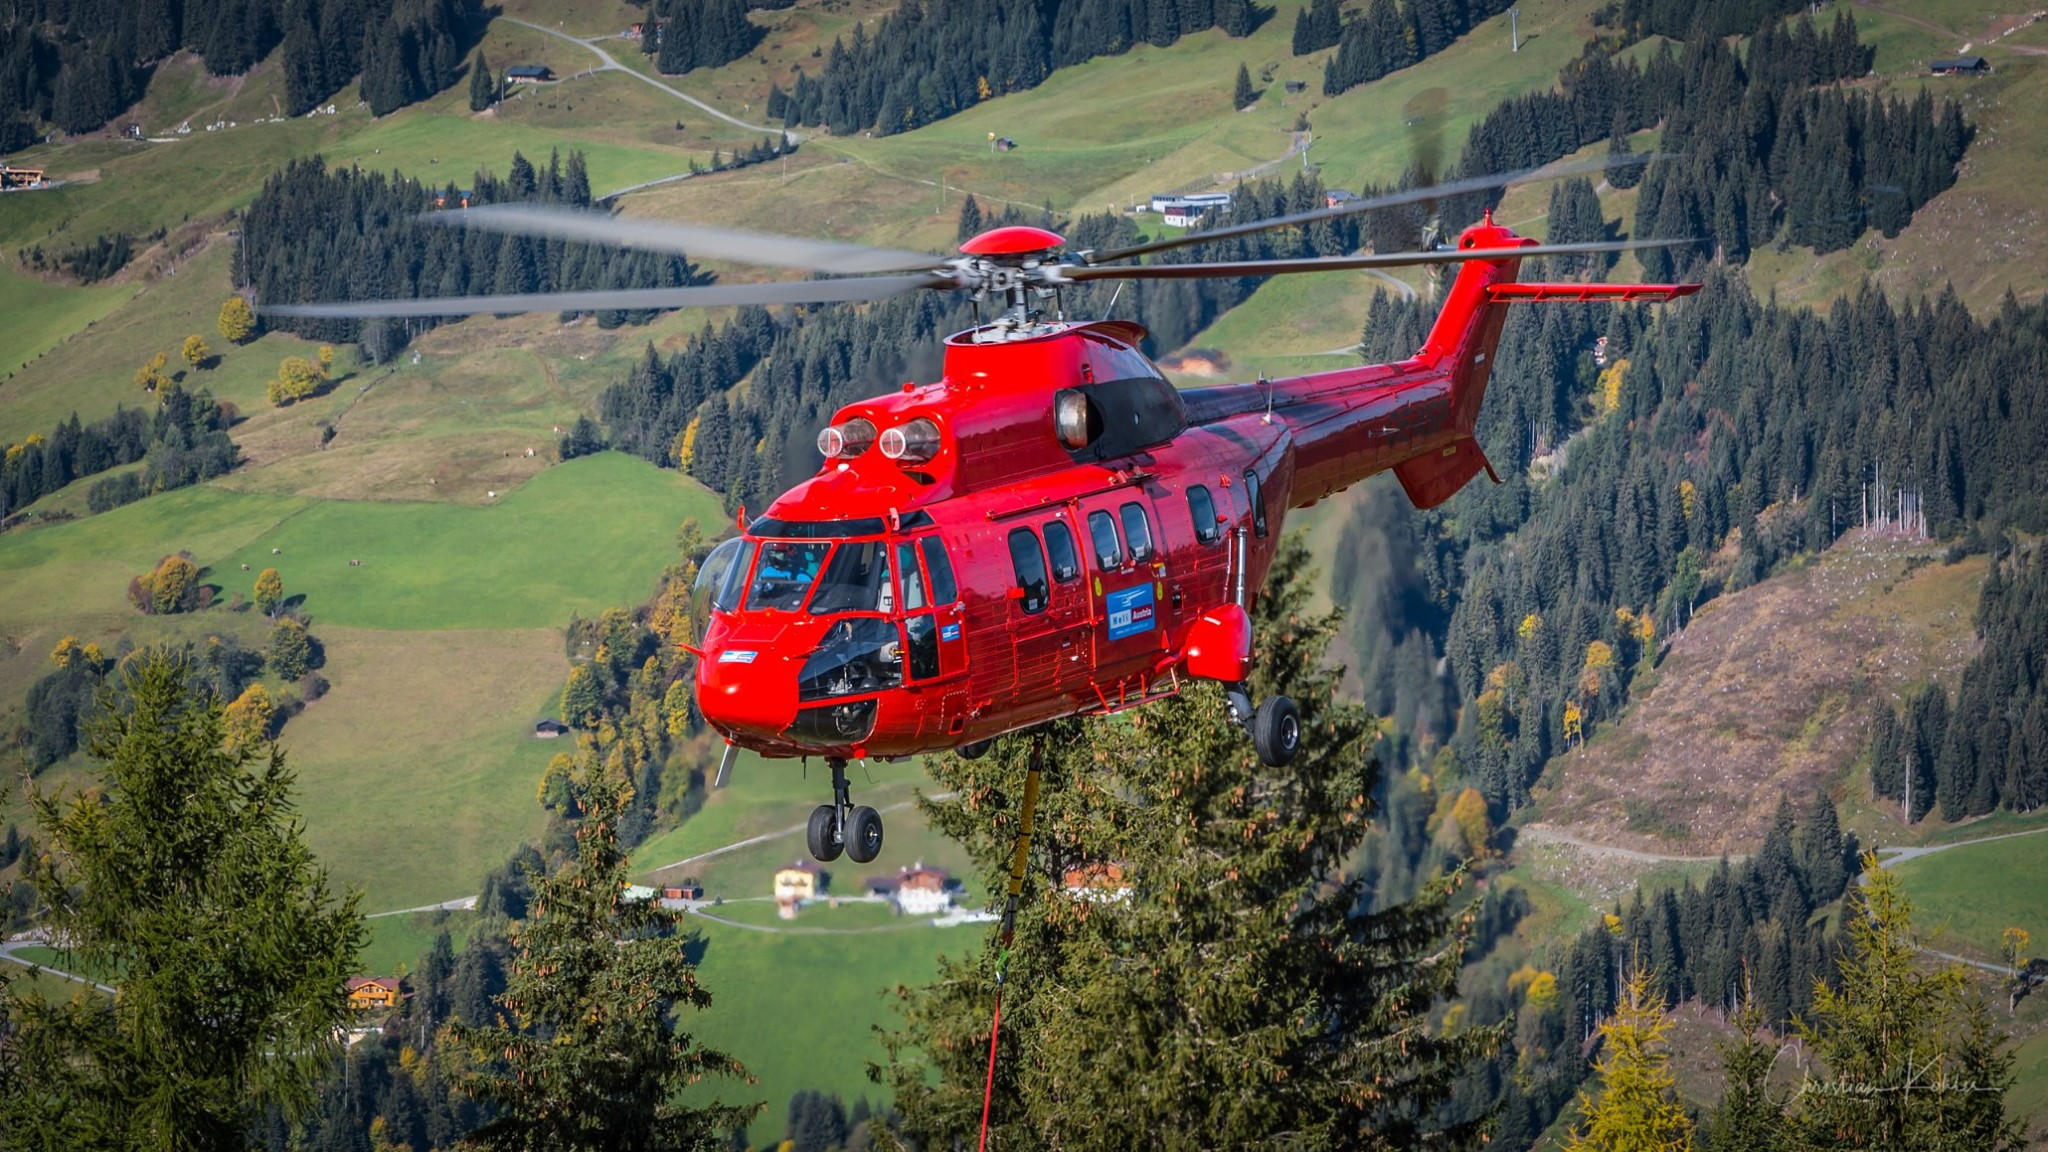 A Heli Austria Airbus AS332L1 Super Puma performs external load operations. Photo submitted by Christian Koehler